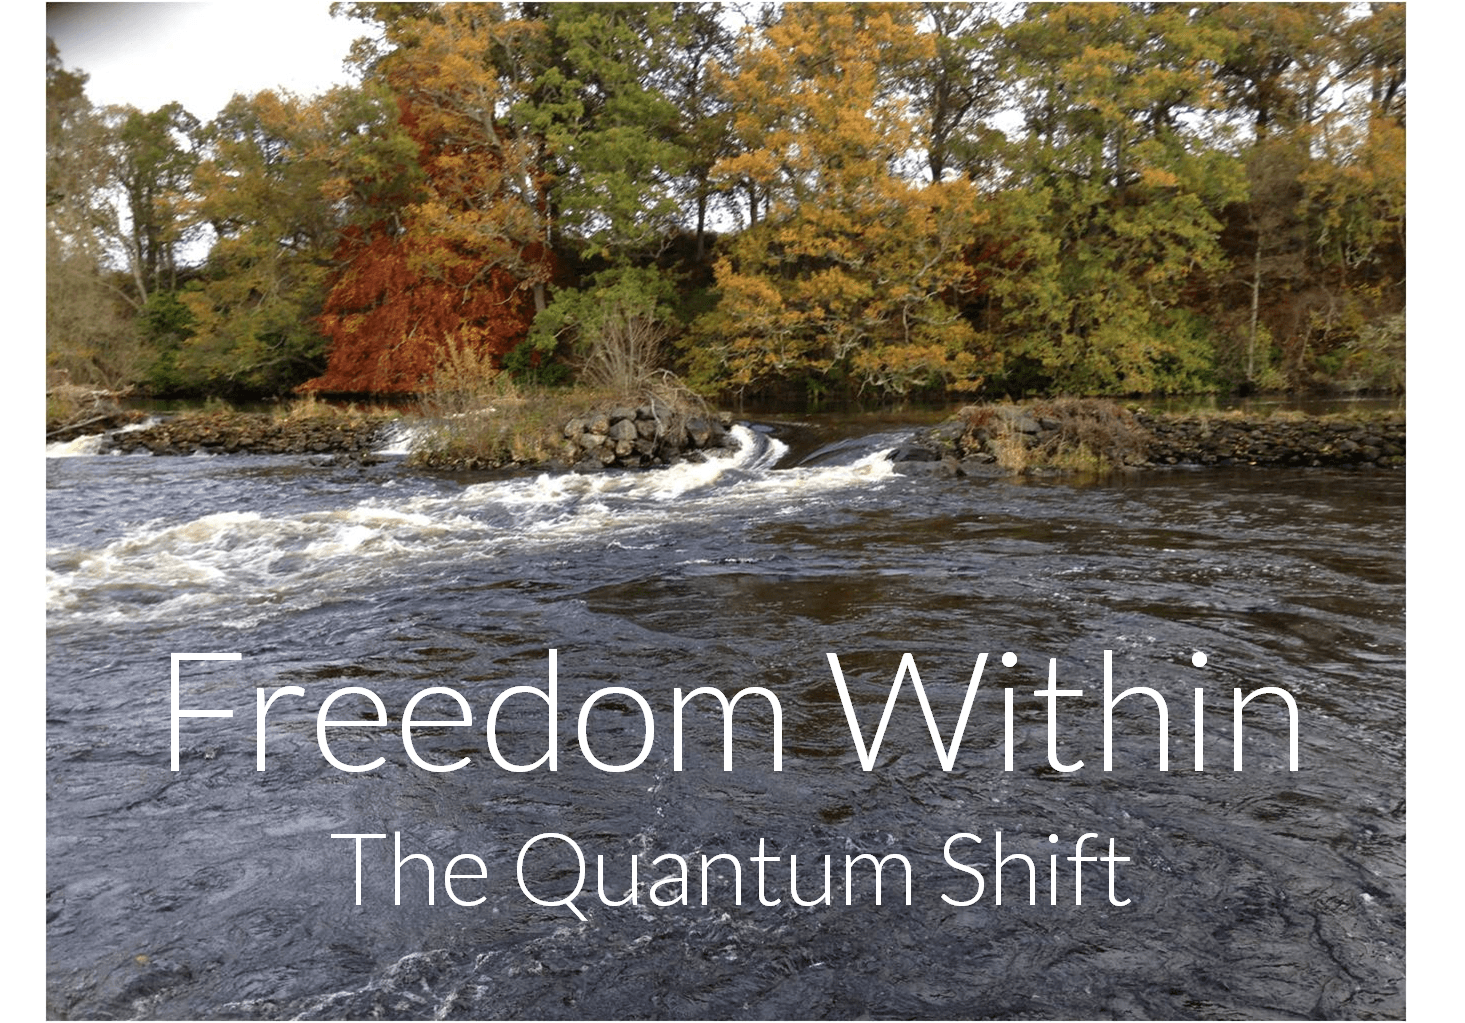 AboutFreedomWithin2